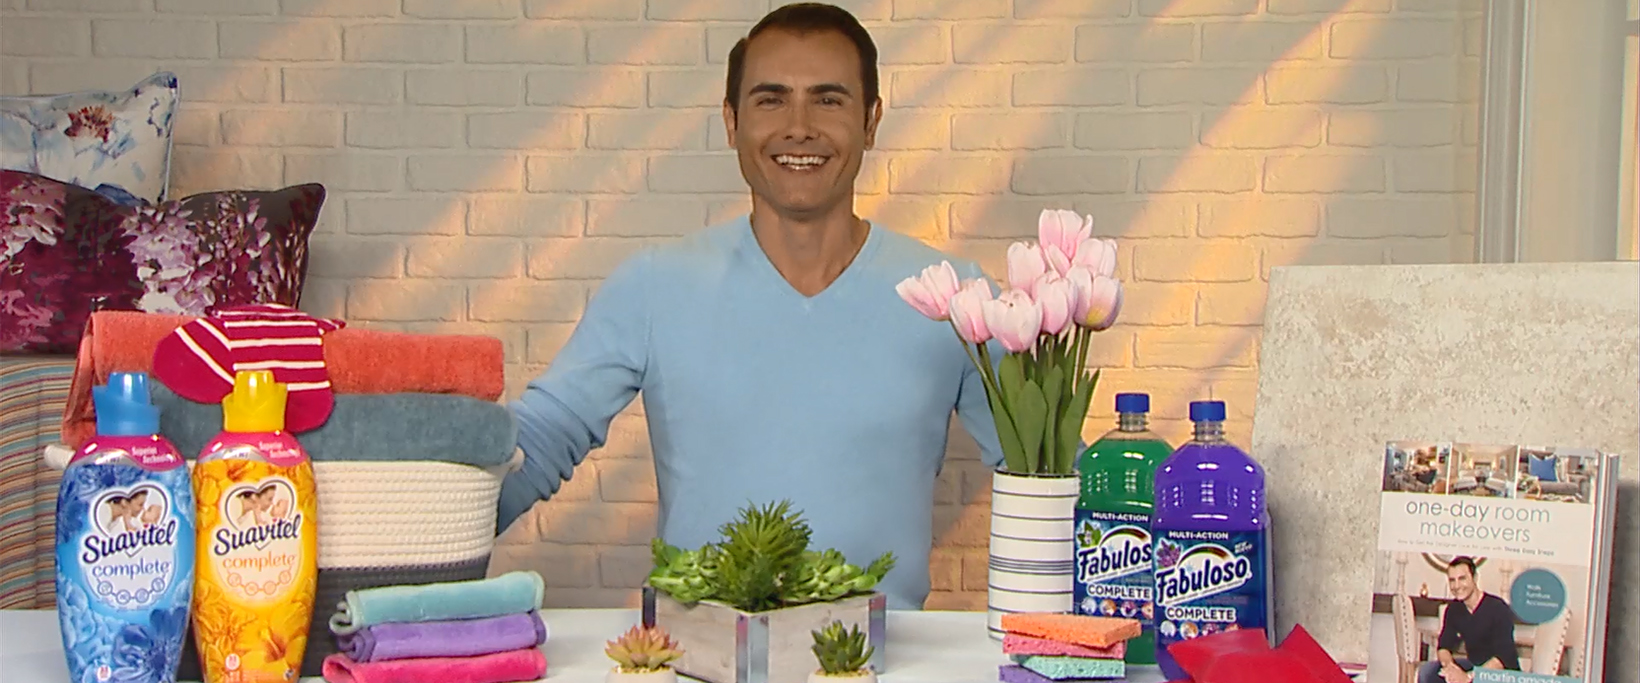 Martin Amado highlights different products and ideas to give your home a refresh this spring